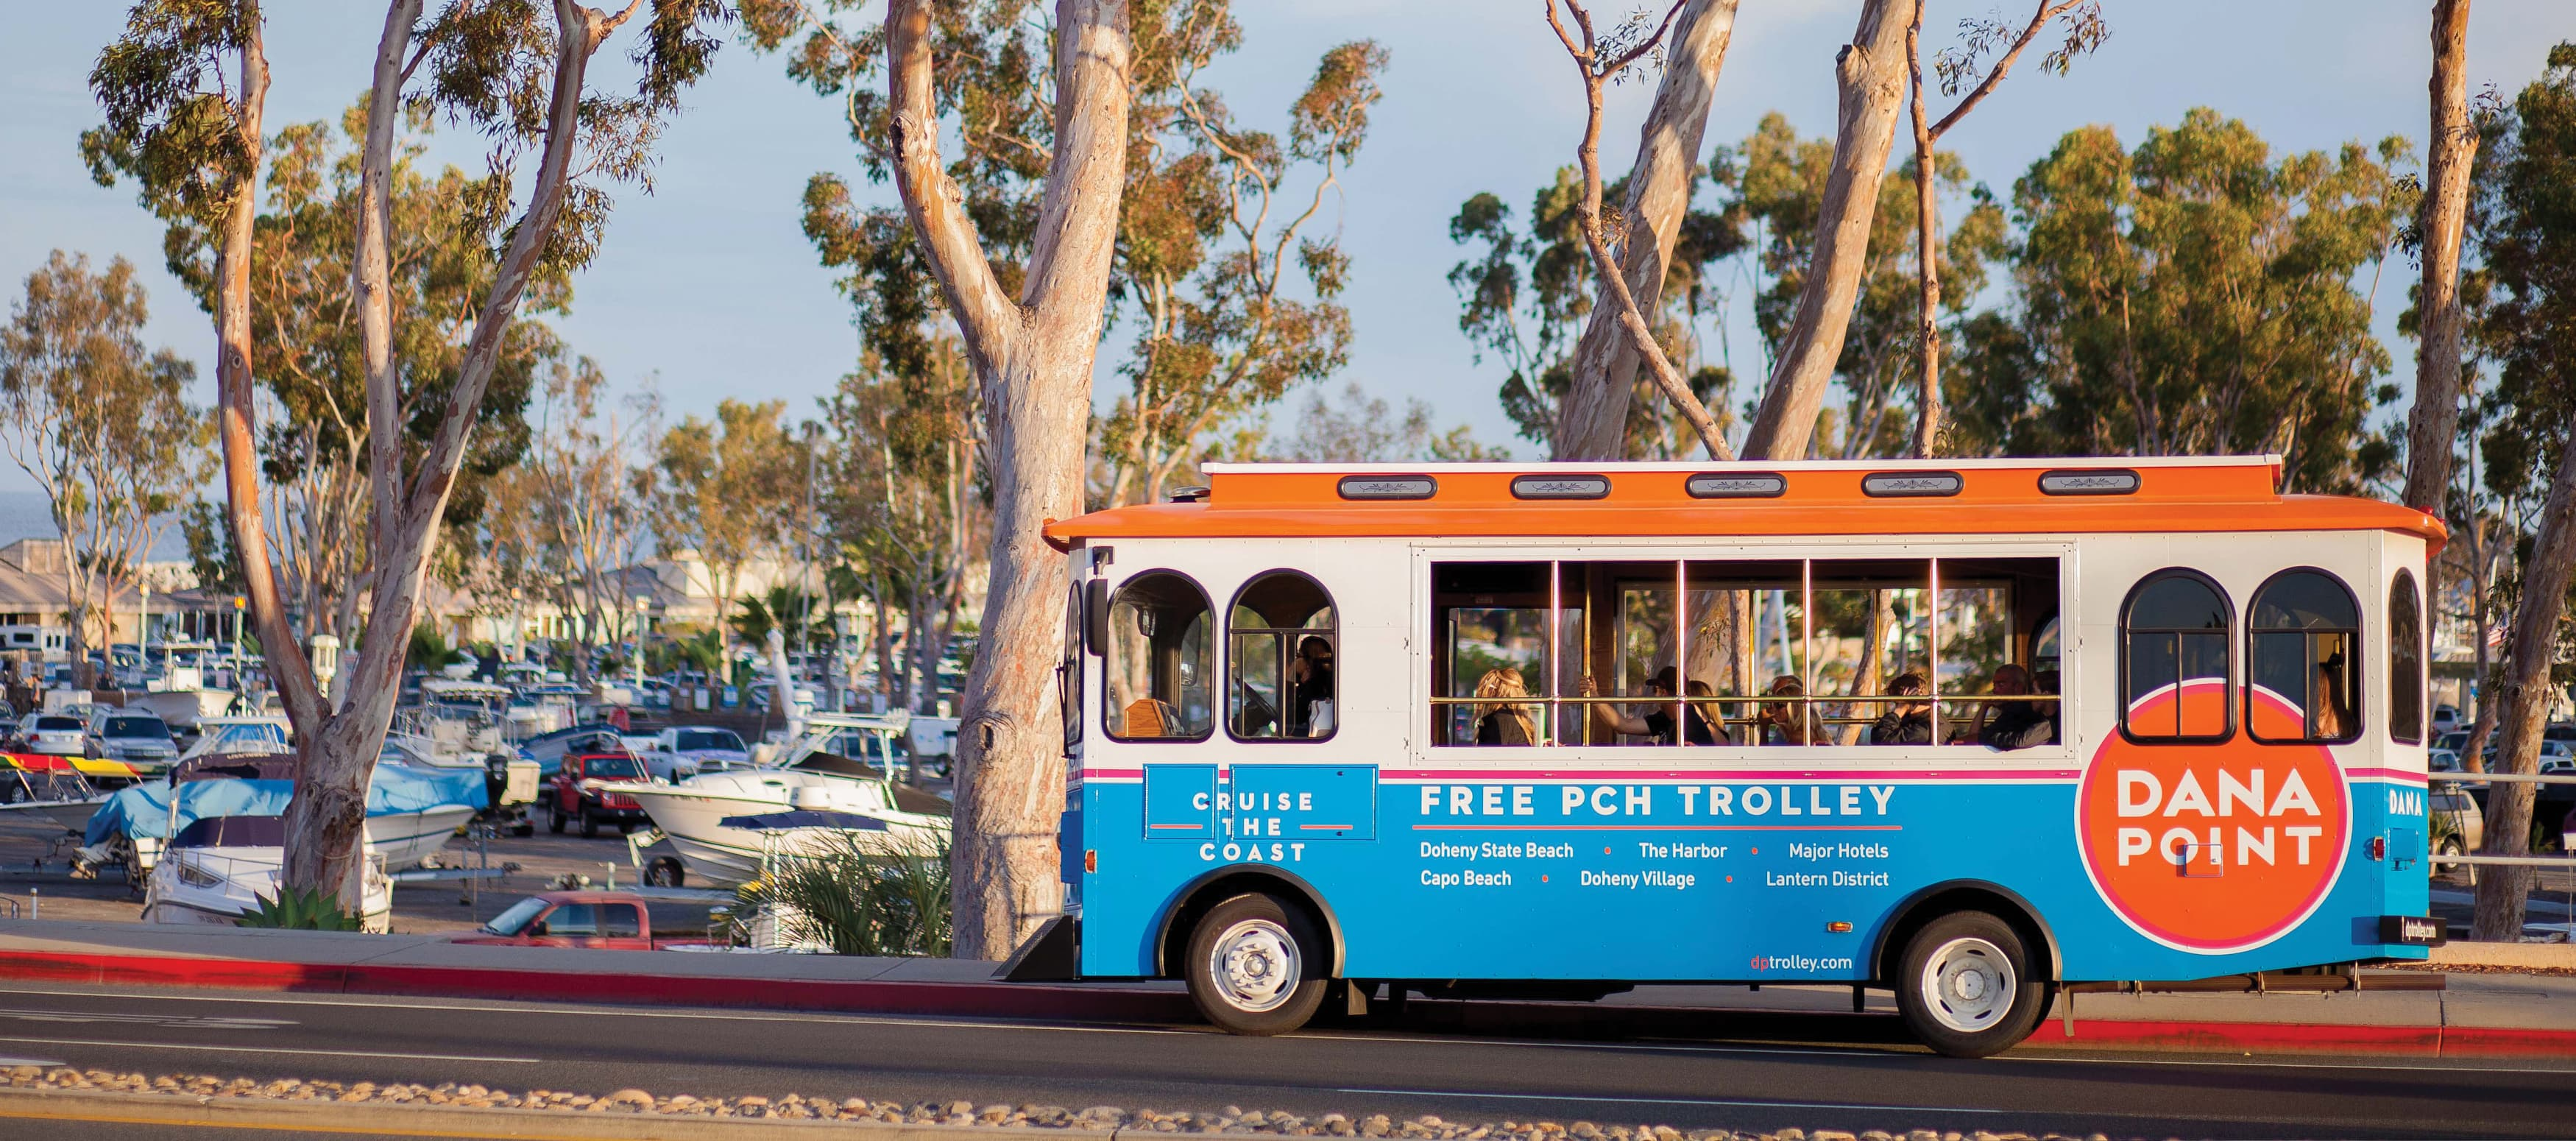 Dana Point public city trolley with orange and blue desIGN